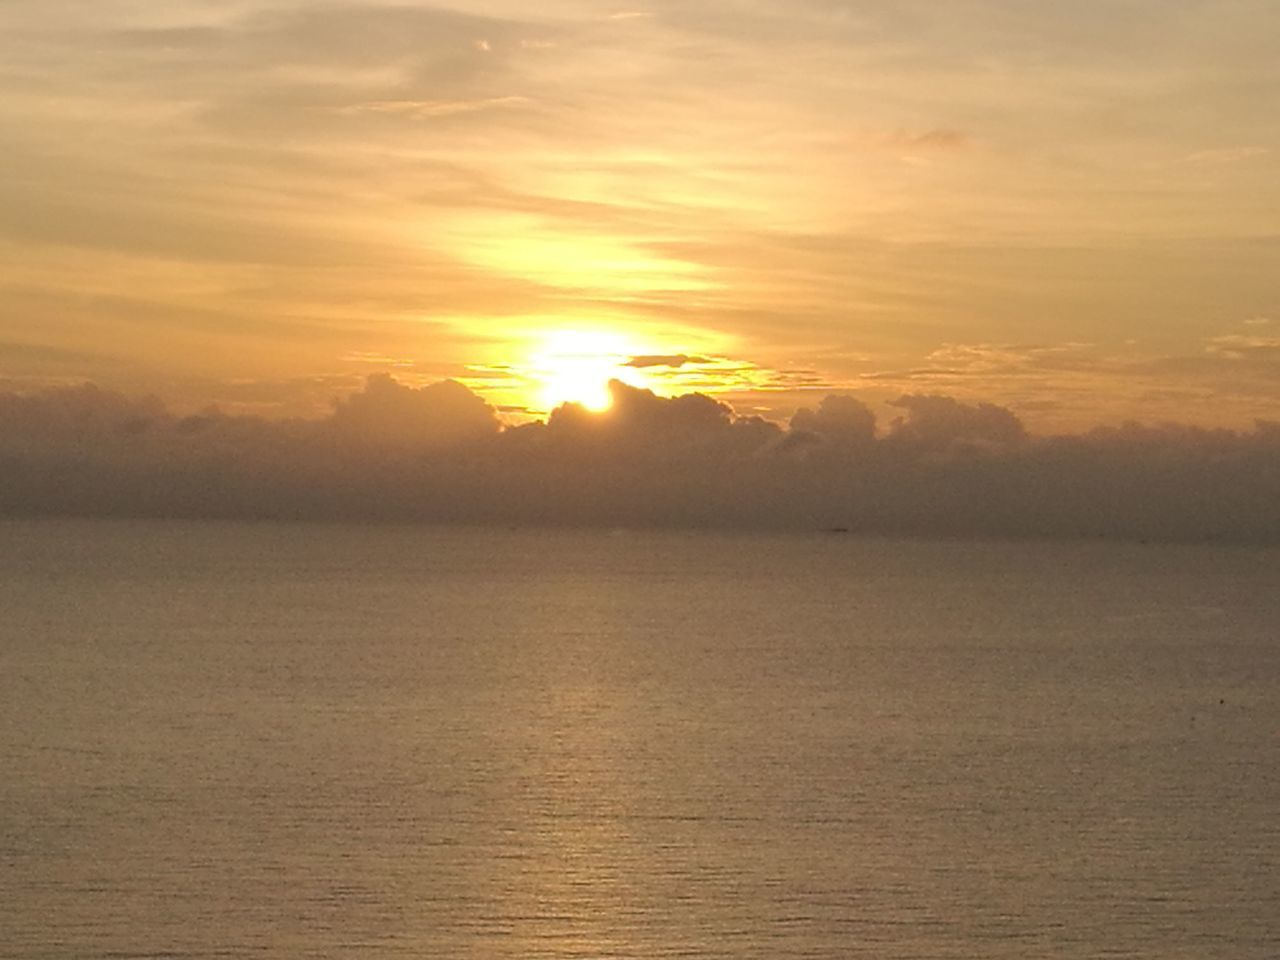 sunset, sea, nature, scenics, tranquility, sun, beauty in nature, tranquil scene, water, no people, sky, outdoors, horizon over water